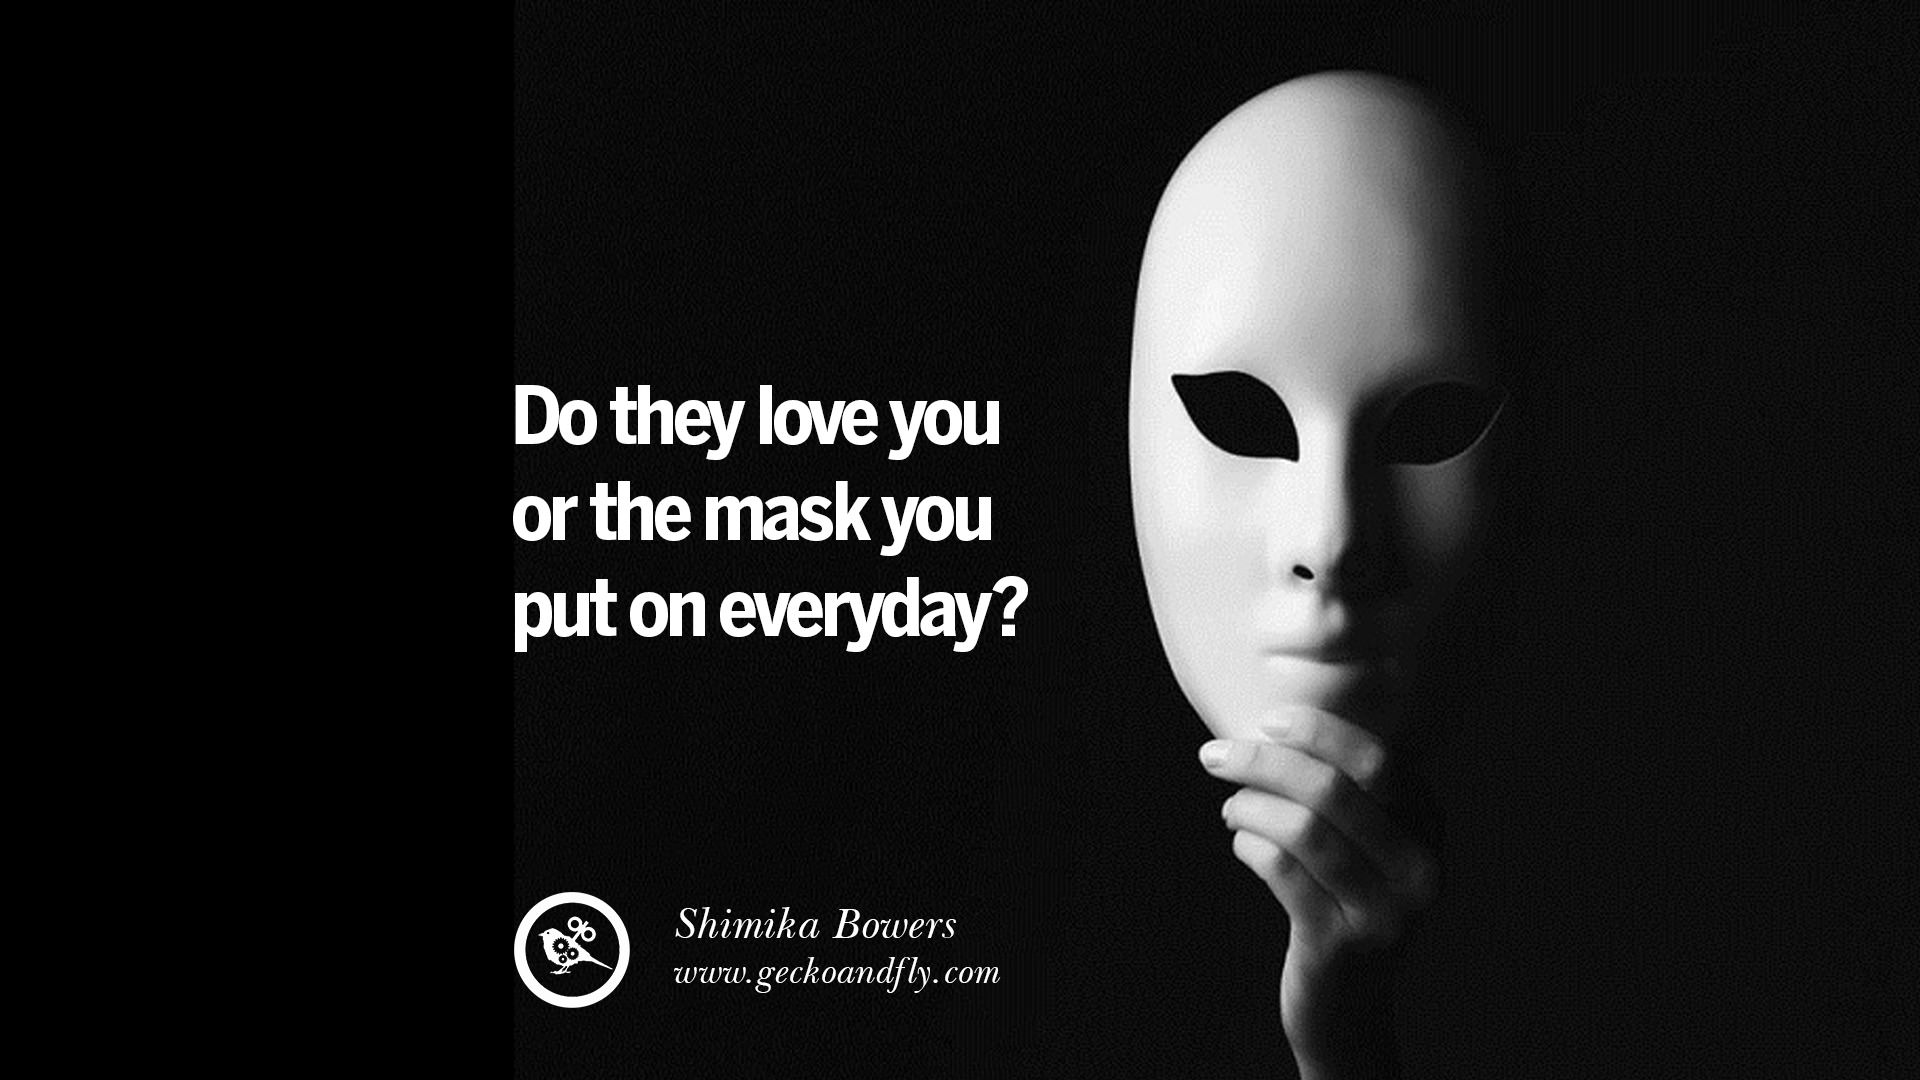 V For Vendetta Wallpaper Quotes 20 Quotes On Wearing A Mask Lying And Hiding Oneself